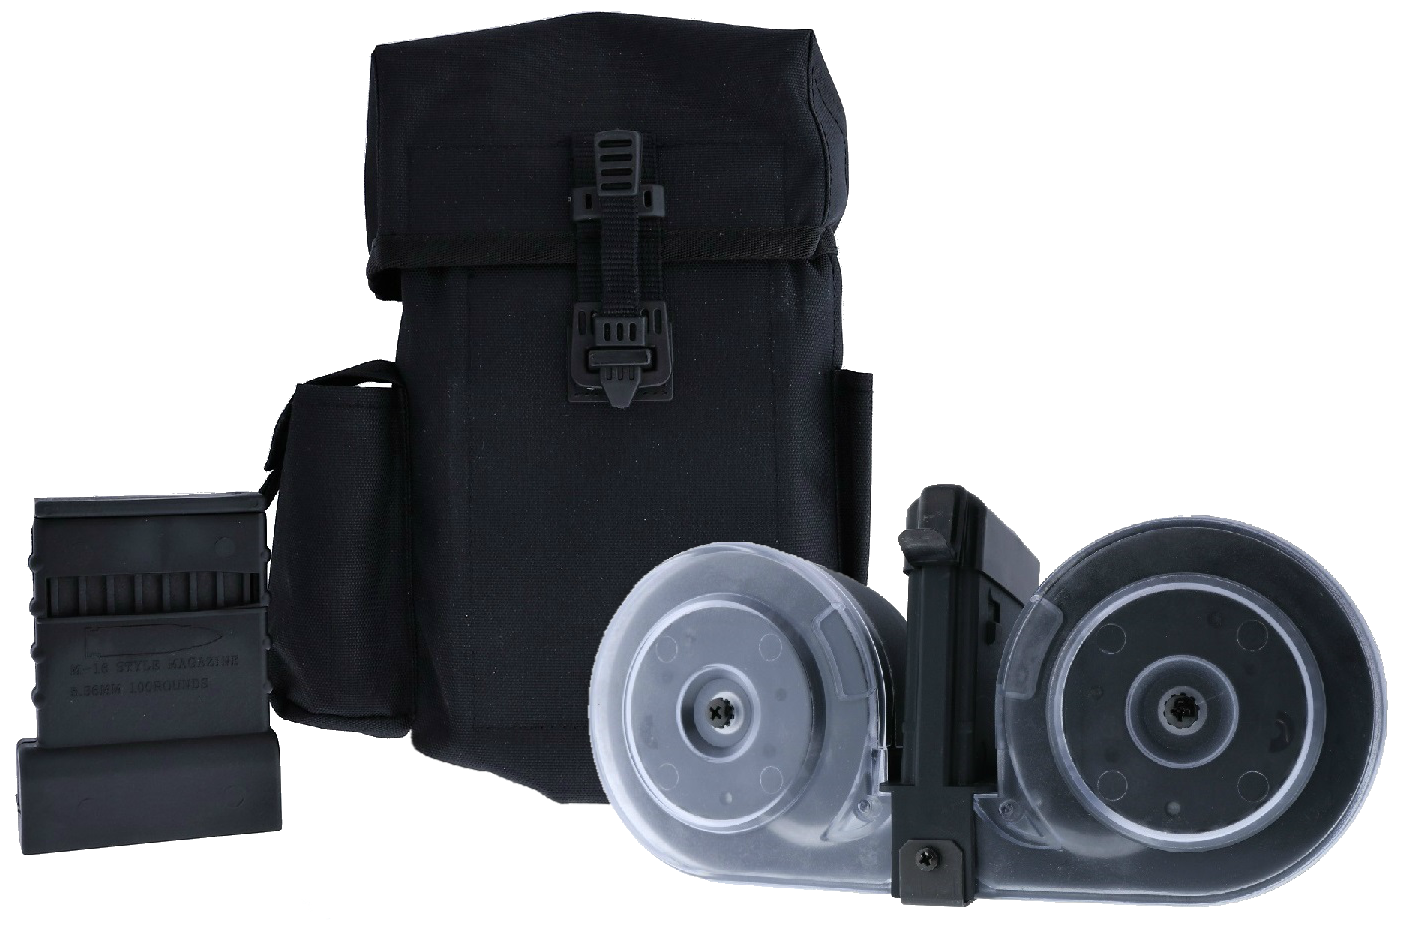 KCI AR-15 .223/5.56 100-Round Drum Magazine with Personal Loader and Pouch